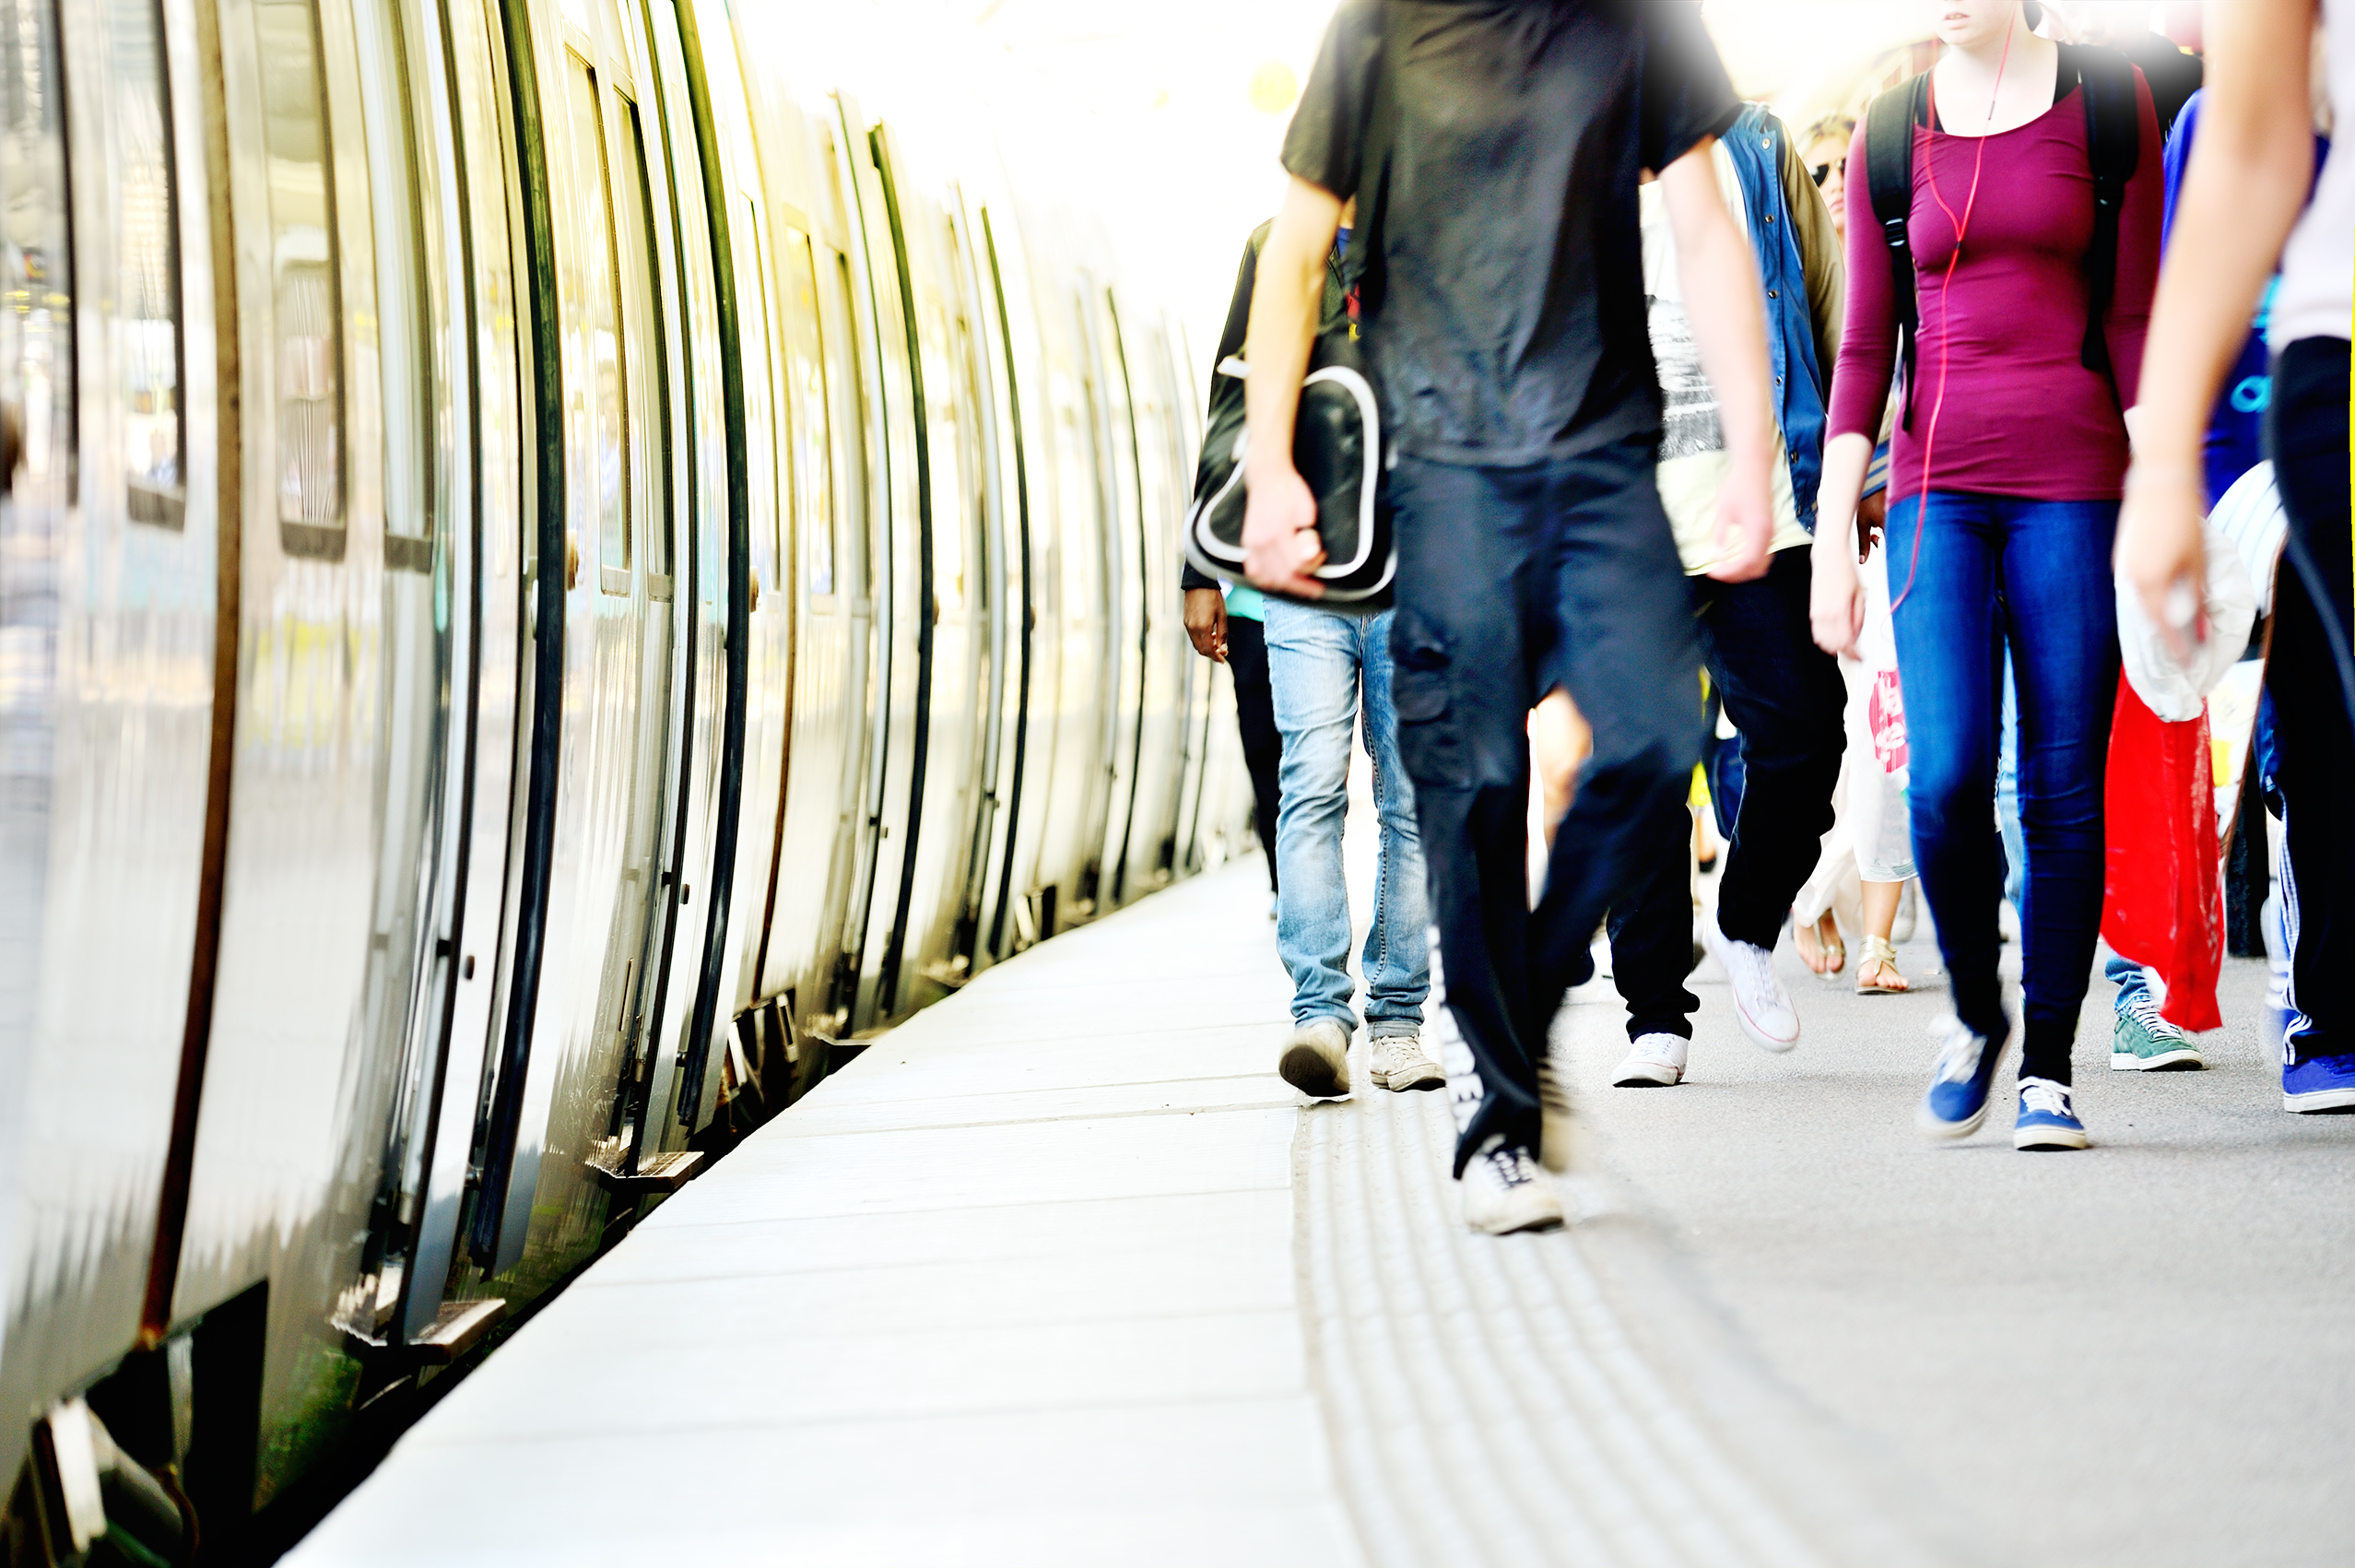 2016 Fare Benchmarking Report released